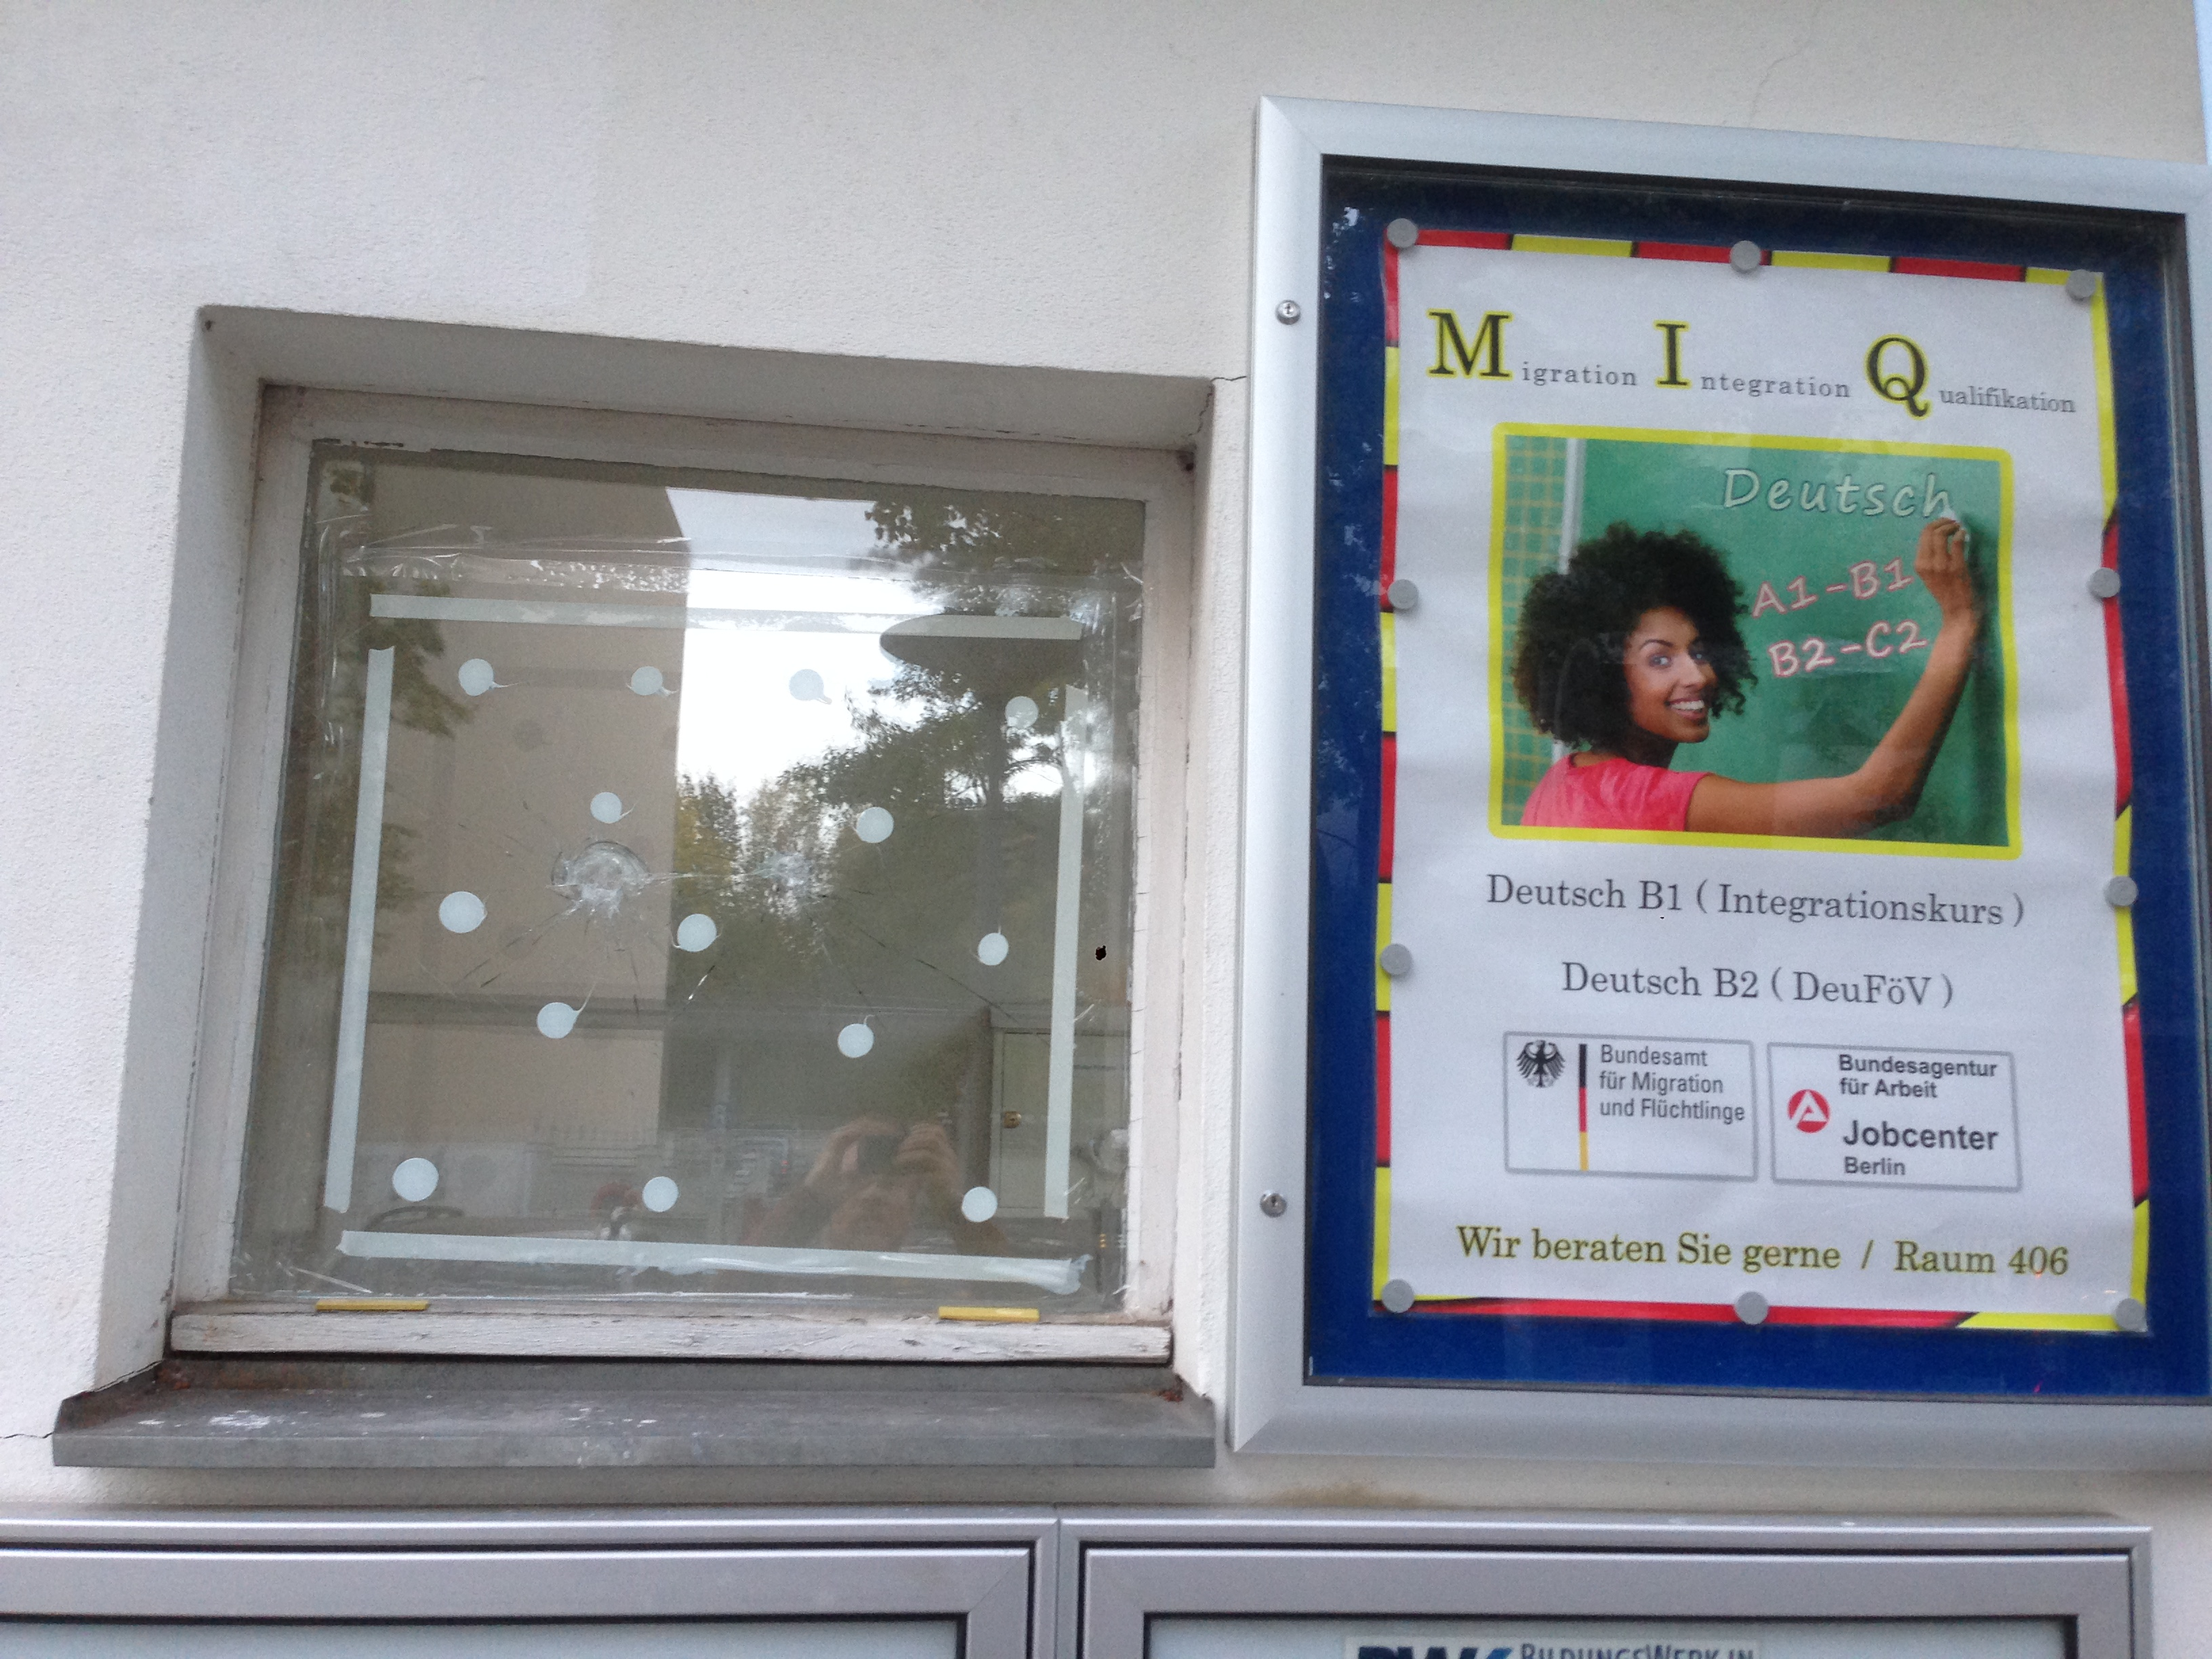 Window broken on purpose, next to an advertisement for integration classes for migrants.